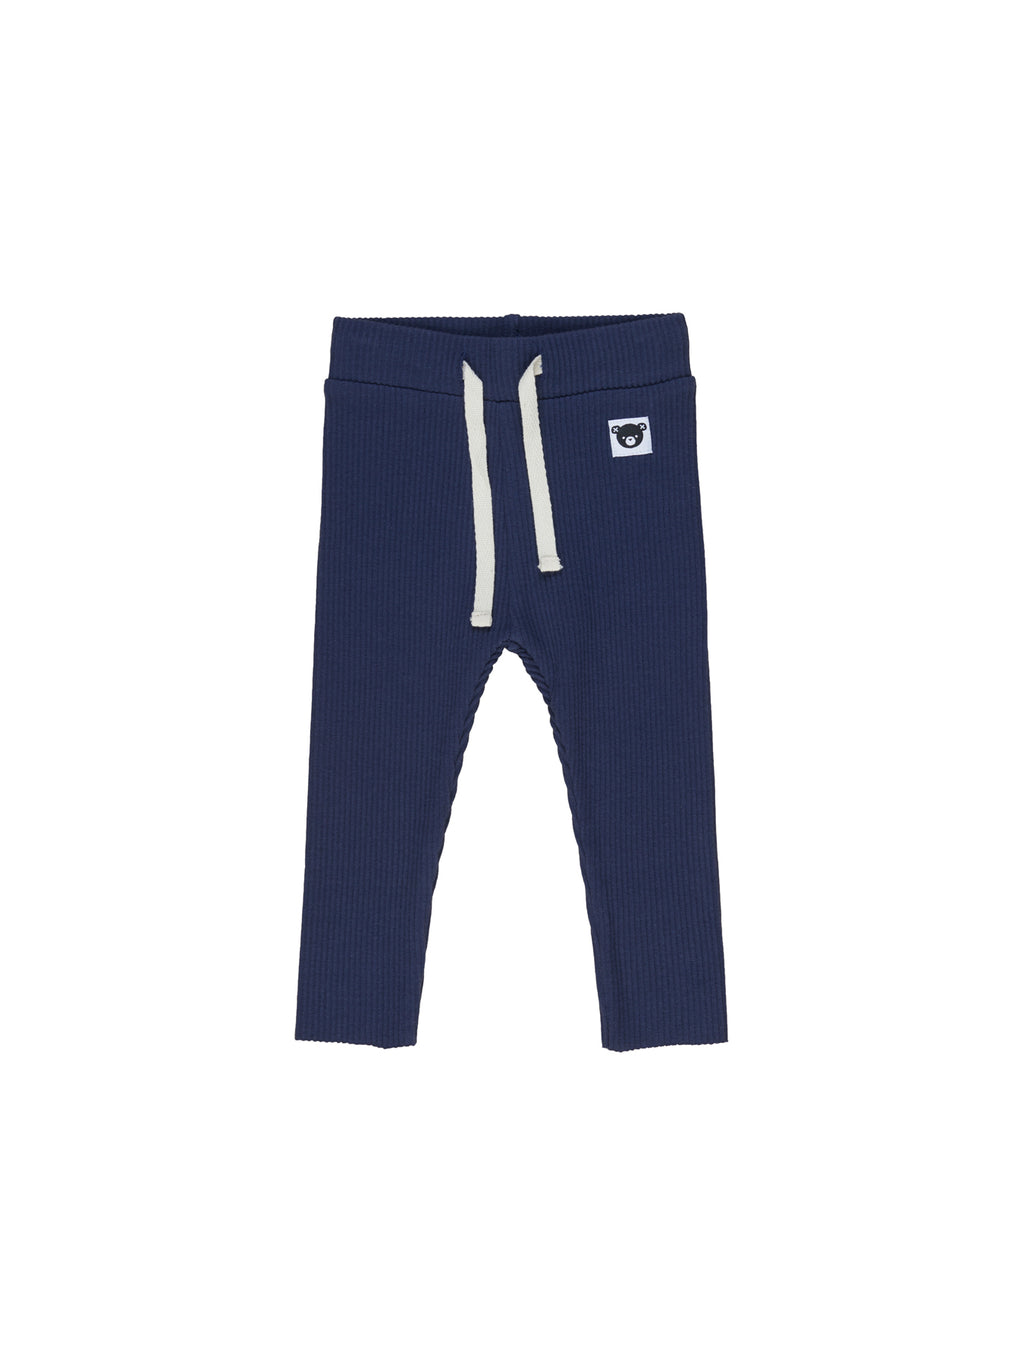 Huxbaby Rib Legging - Dark Blue